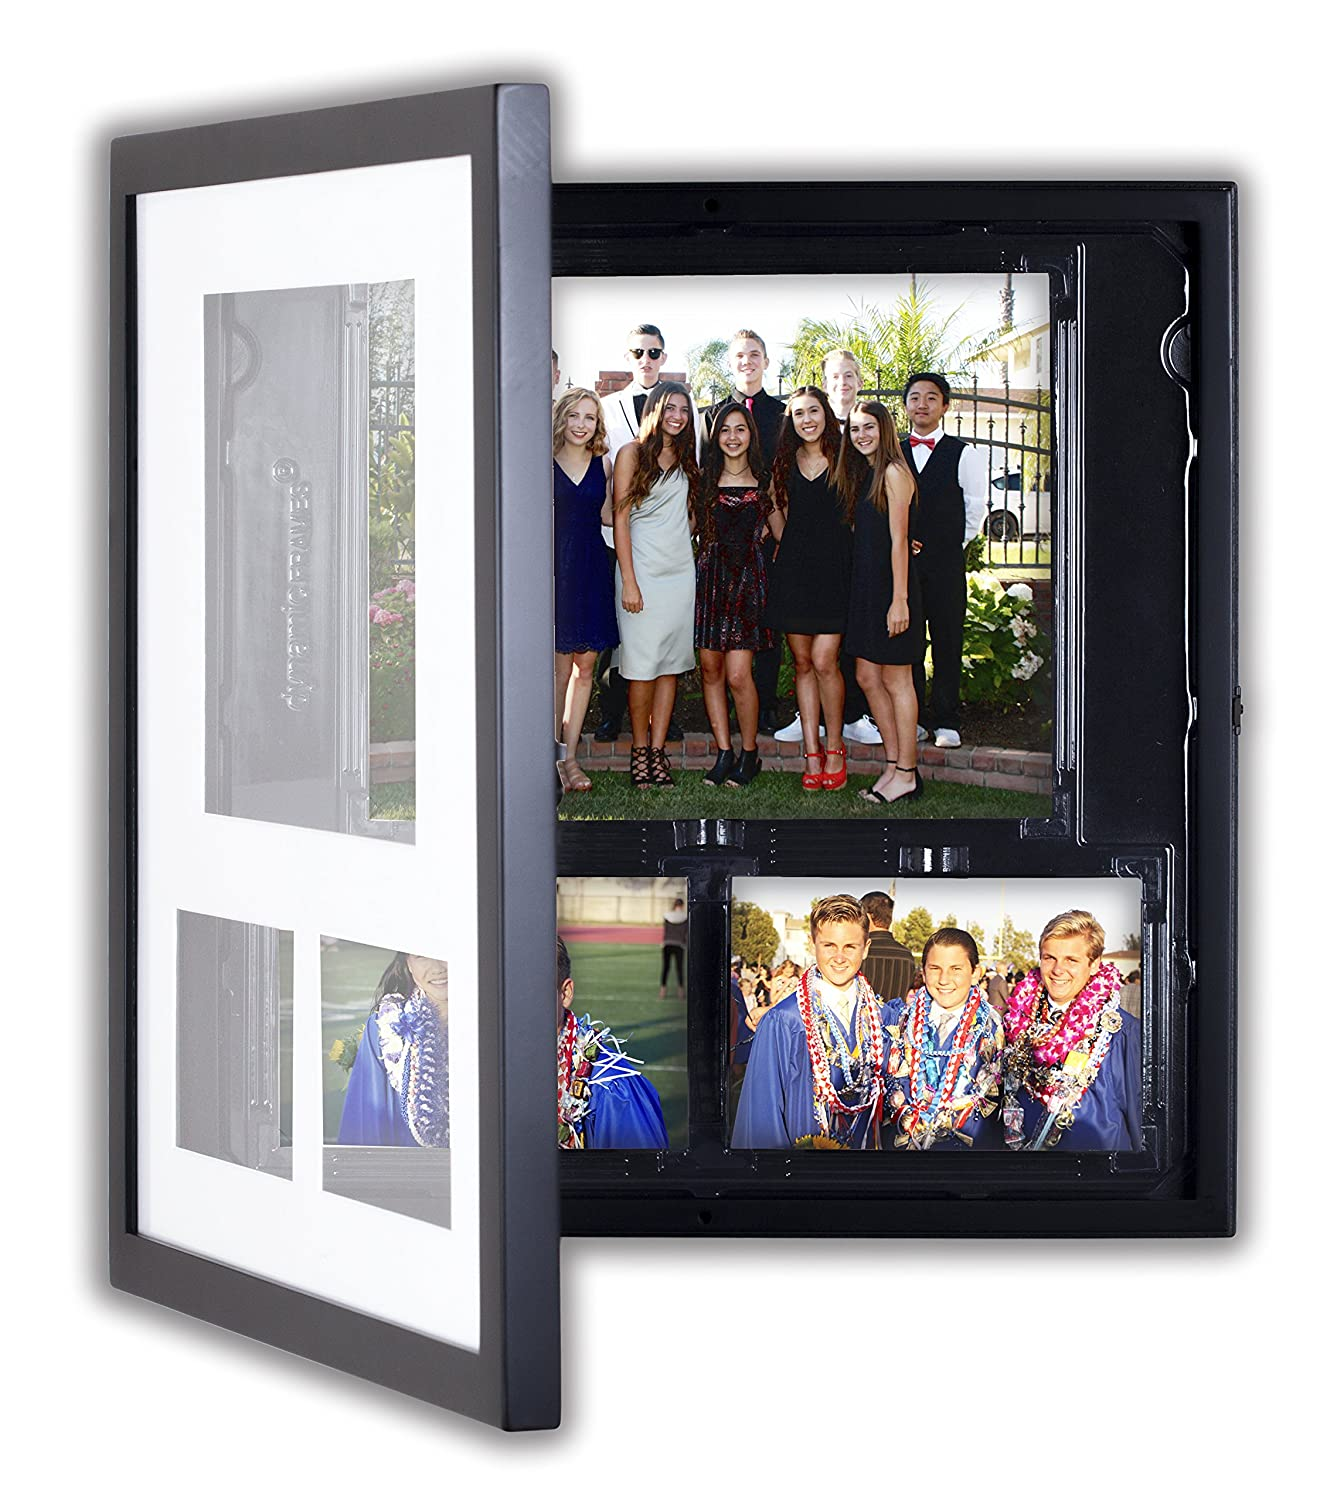 Dynamic Quadratisch Collage Display & Store Foto Schrank (1) 8x10 ...